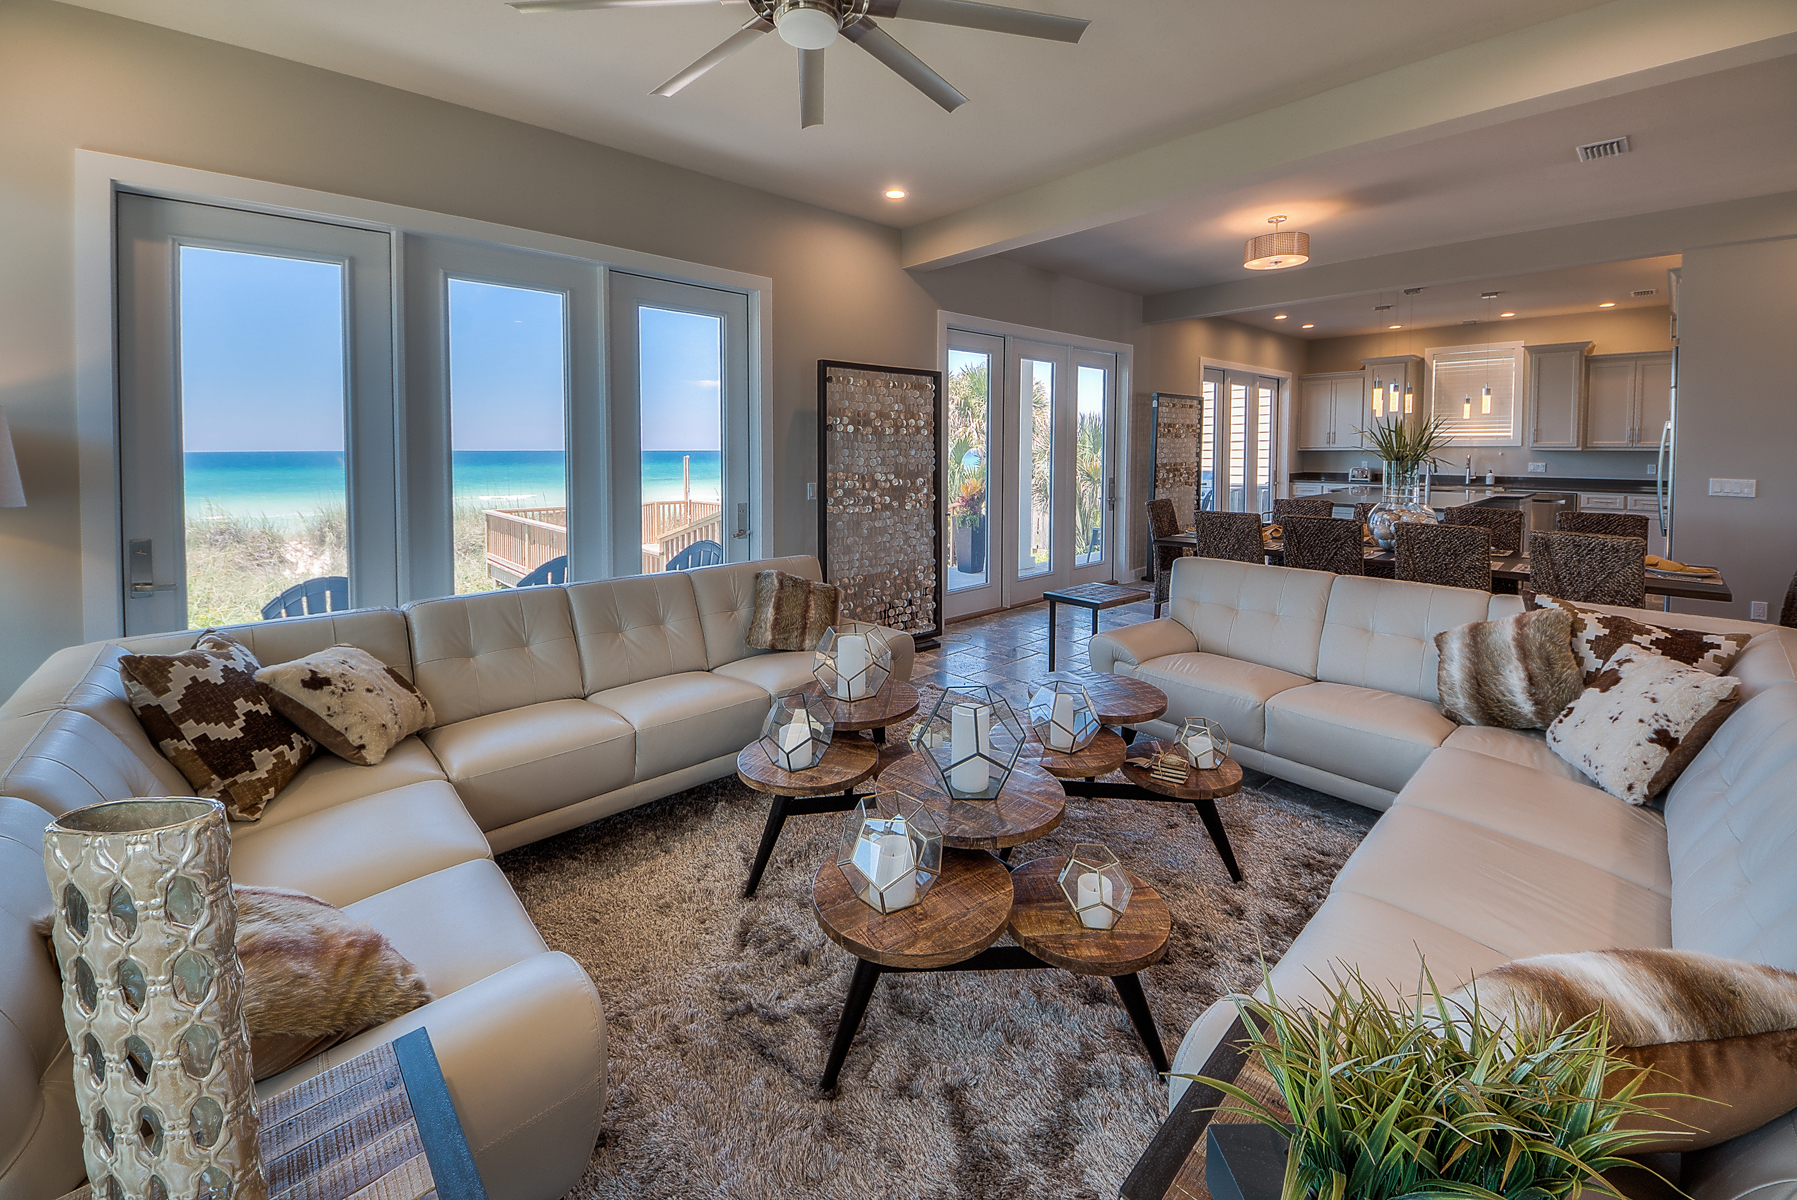 Maison unifamiliale pour l Vente à RECENTLY COMPLETED BEACHFRONT HOME OFFERS ULTIMATE ESCAPE 16611 Front Beach Rd Panama City Beach, Florida, 32413 États-Unis